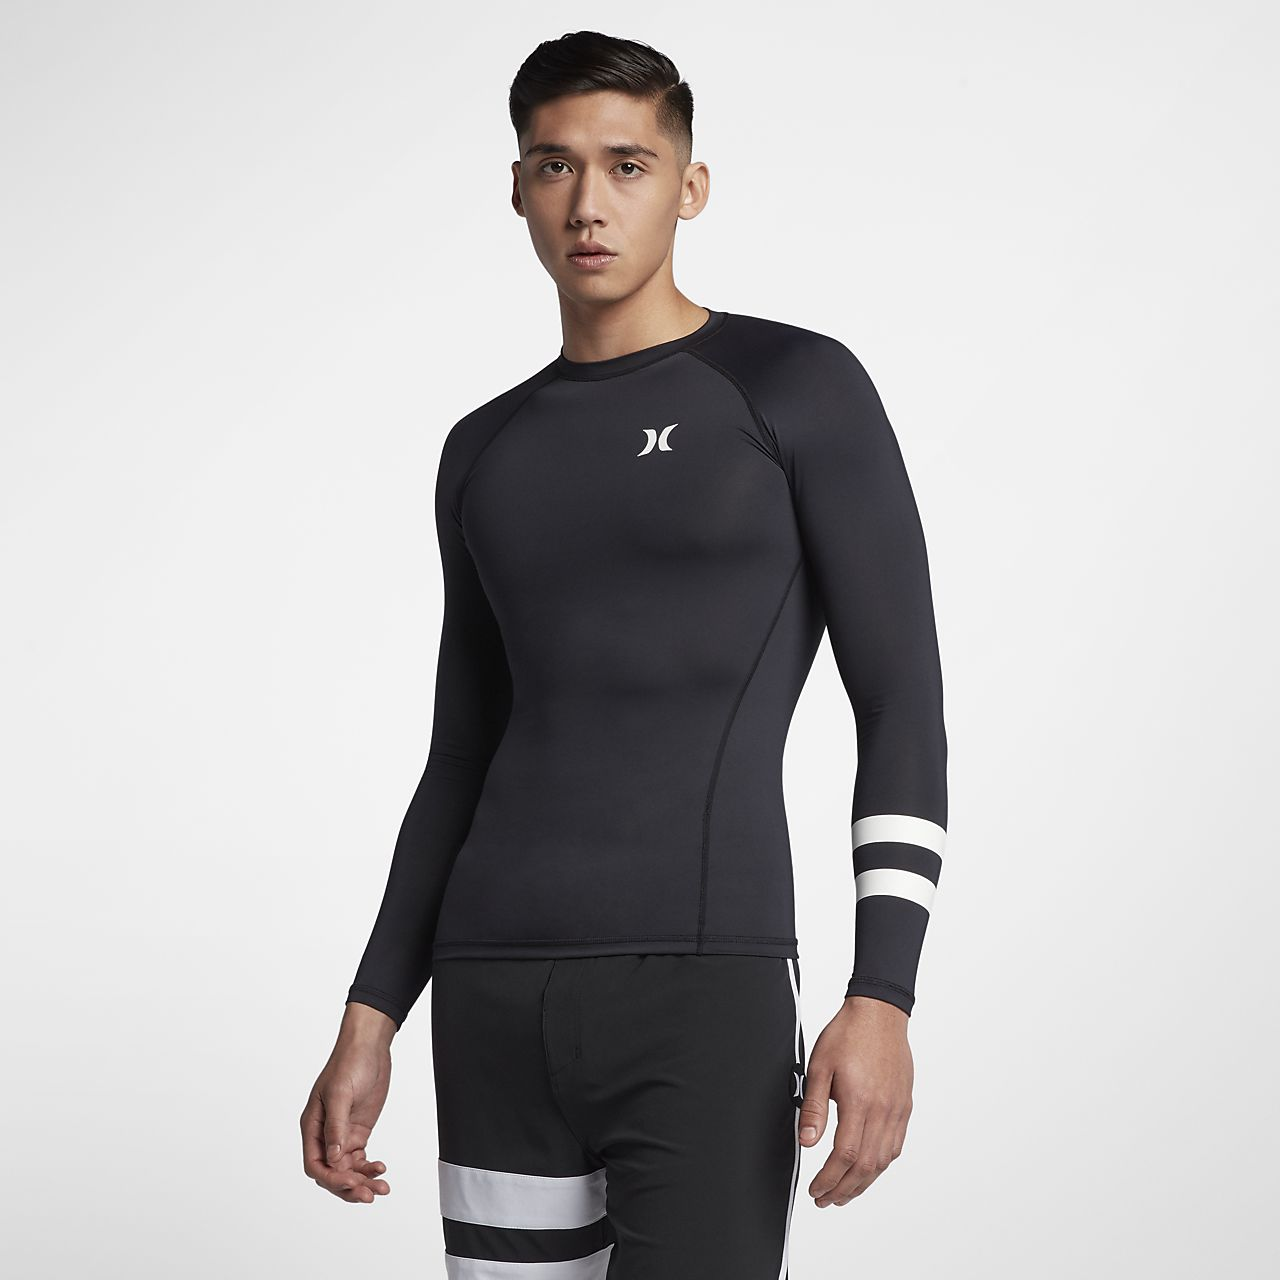 Hurley Pro Light Men's Long-Sleeve Surf Top